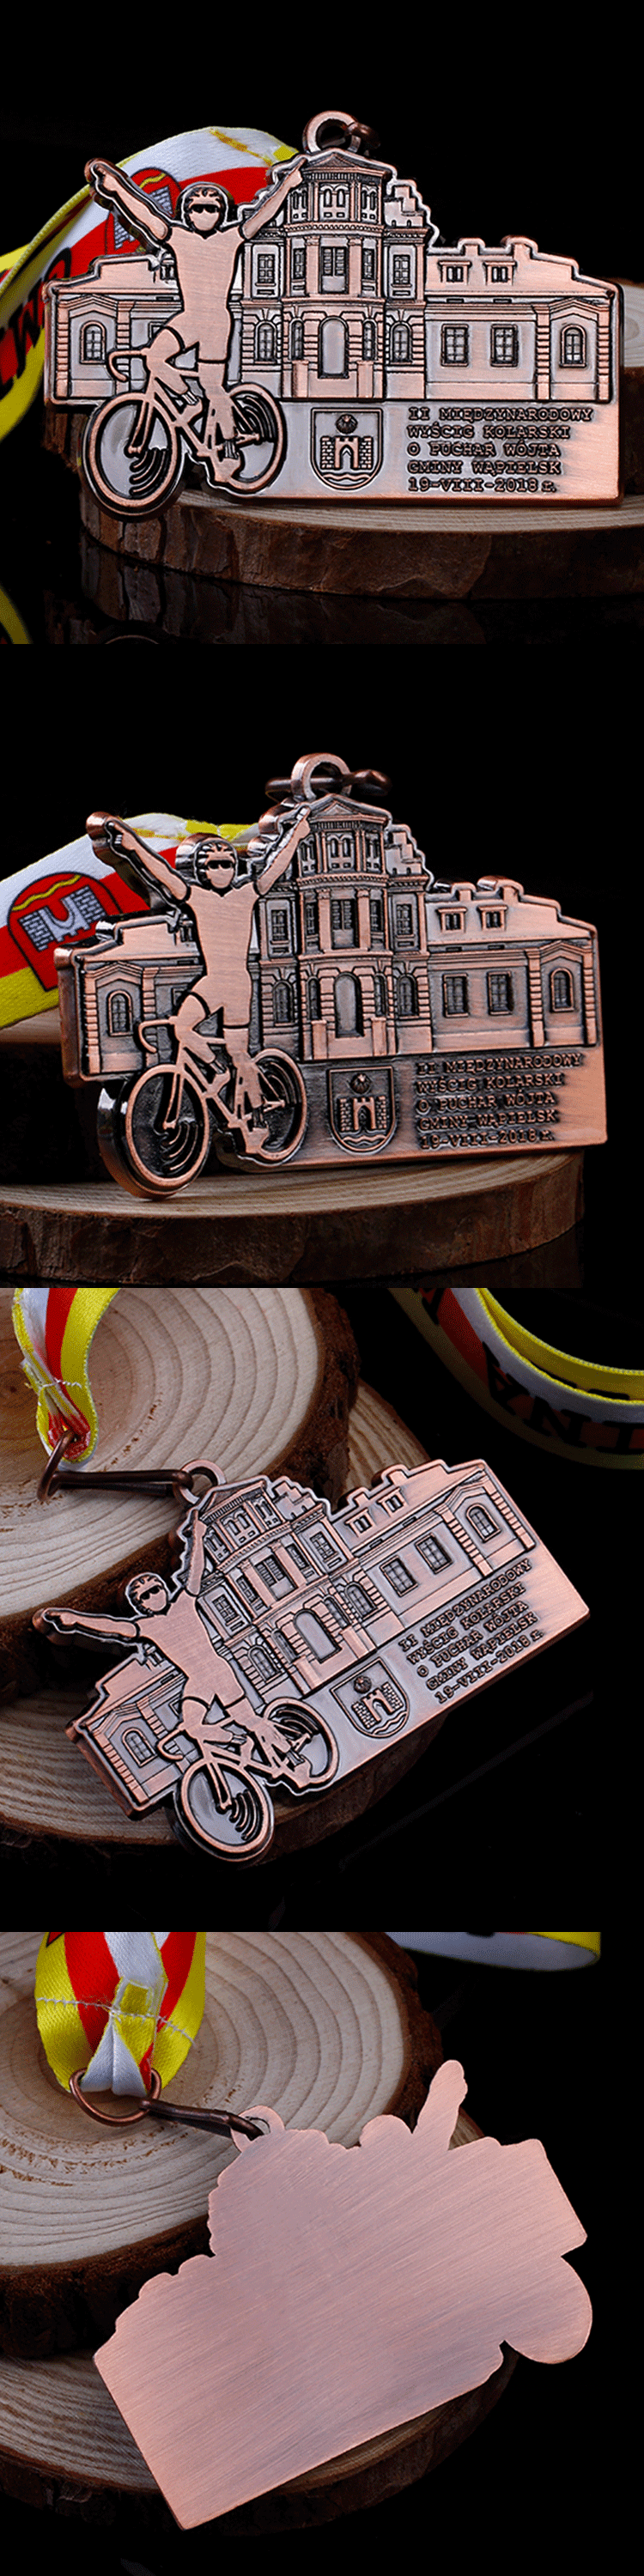 Promotion die cut 3D antique bronze metal cycling challenge medals